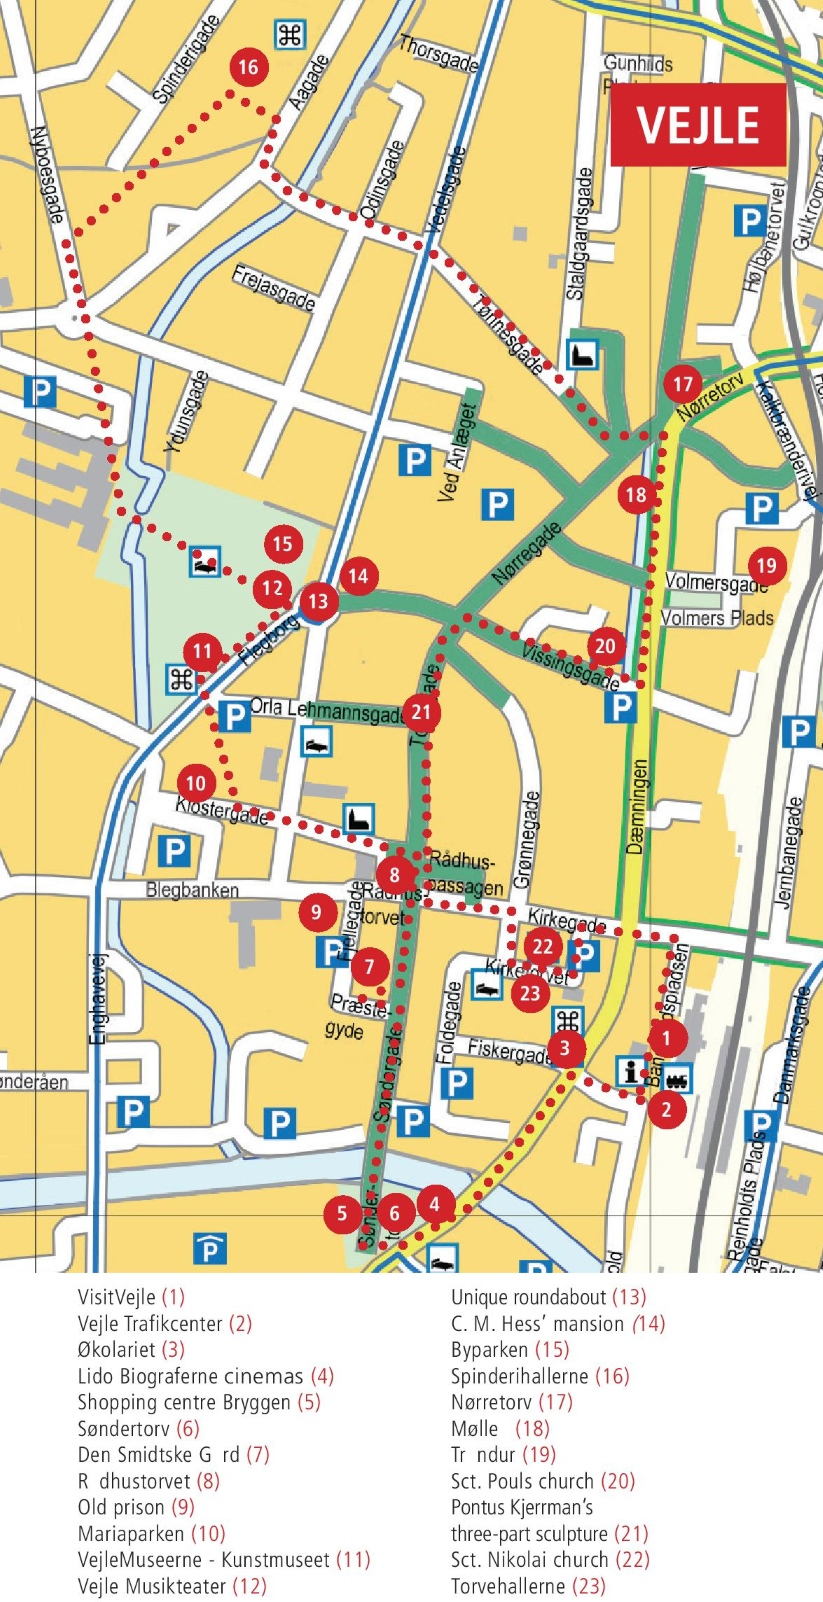 Vejle city center map